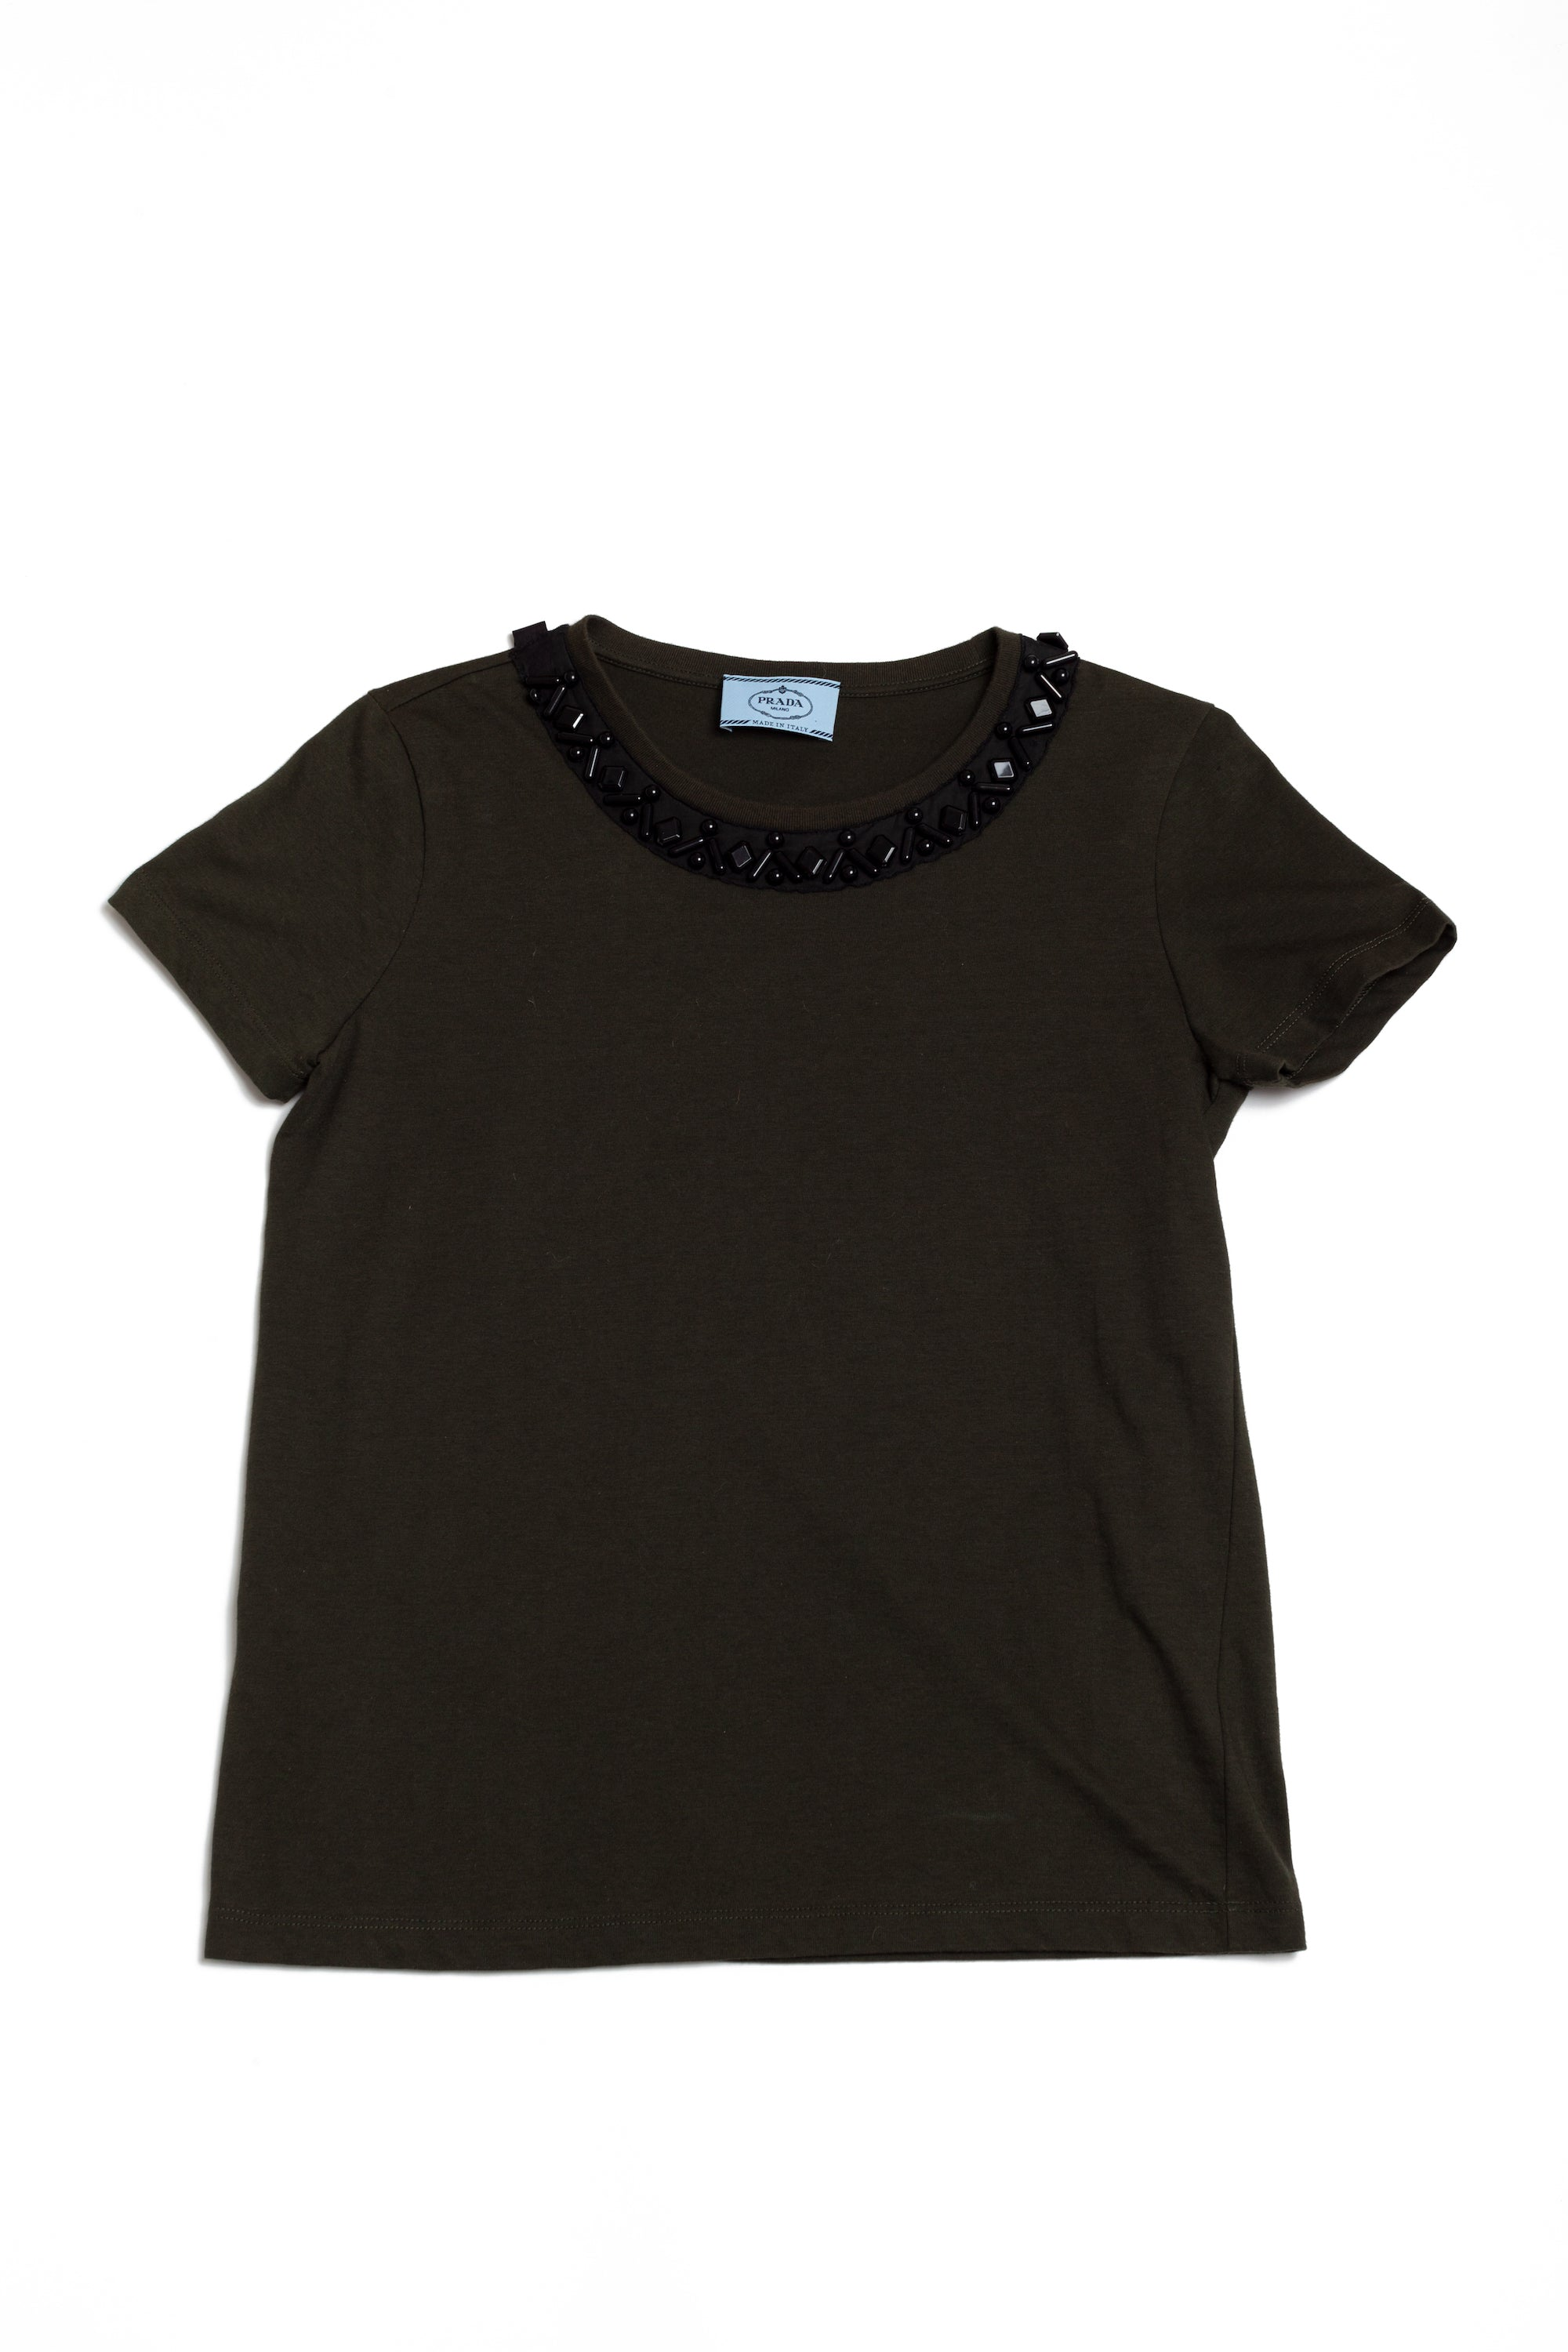 Prada <br> Beaded neckline stretch cotton t-shirt